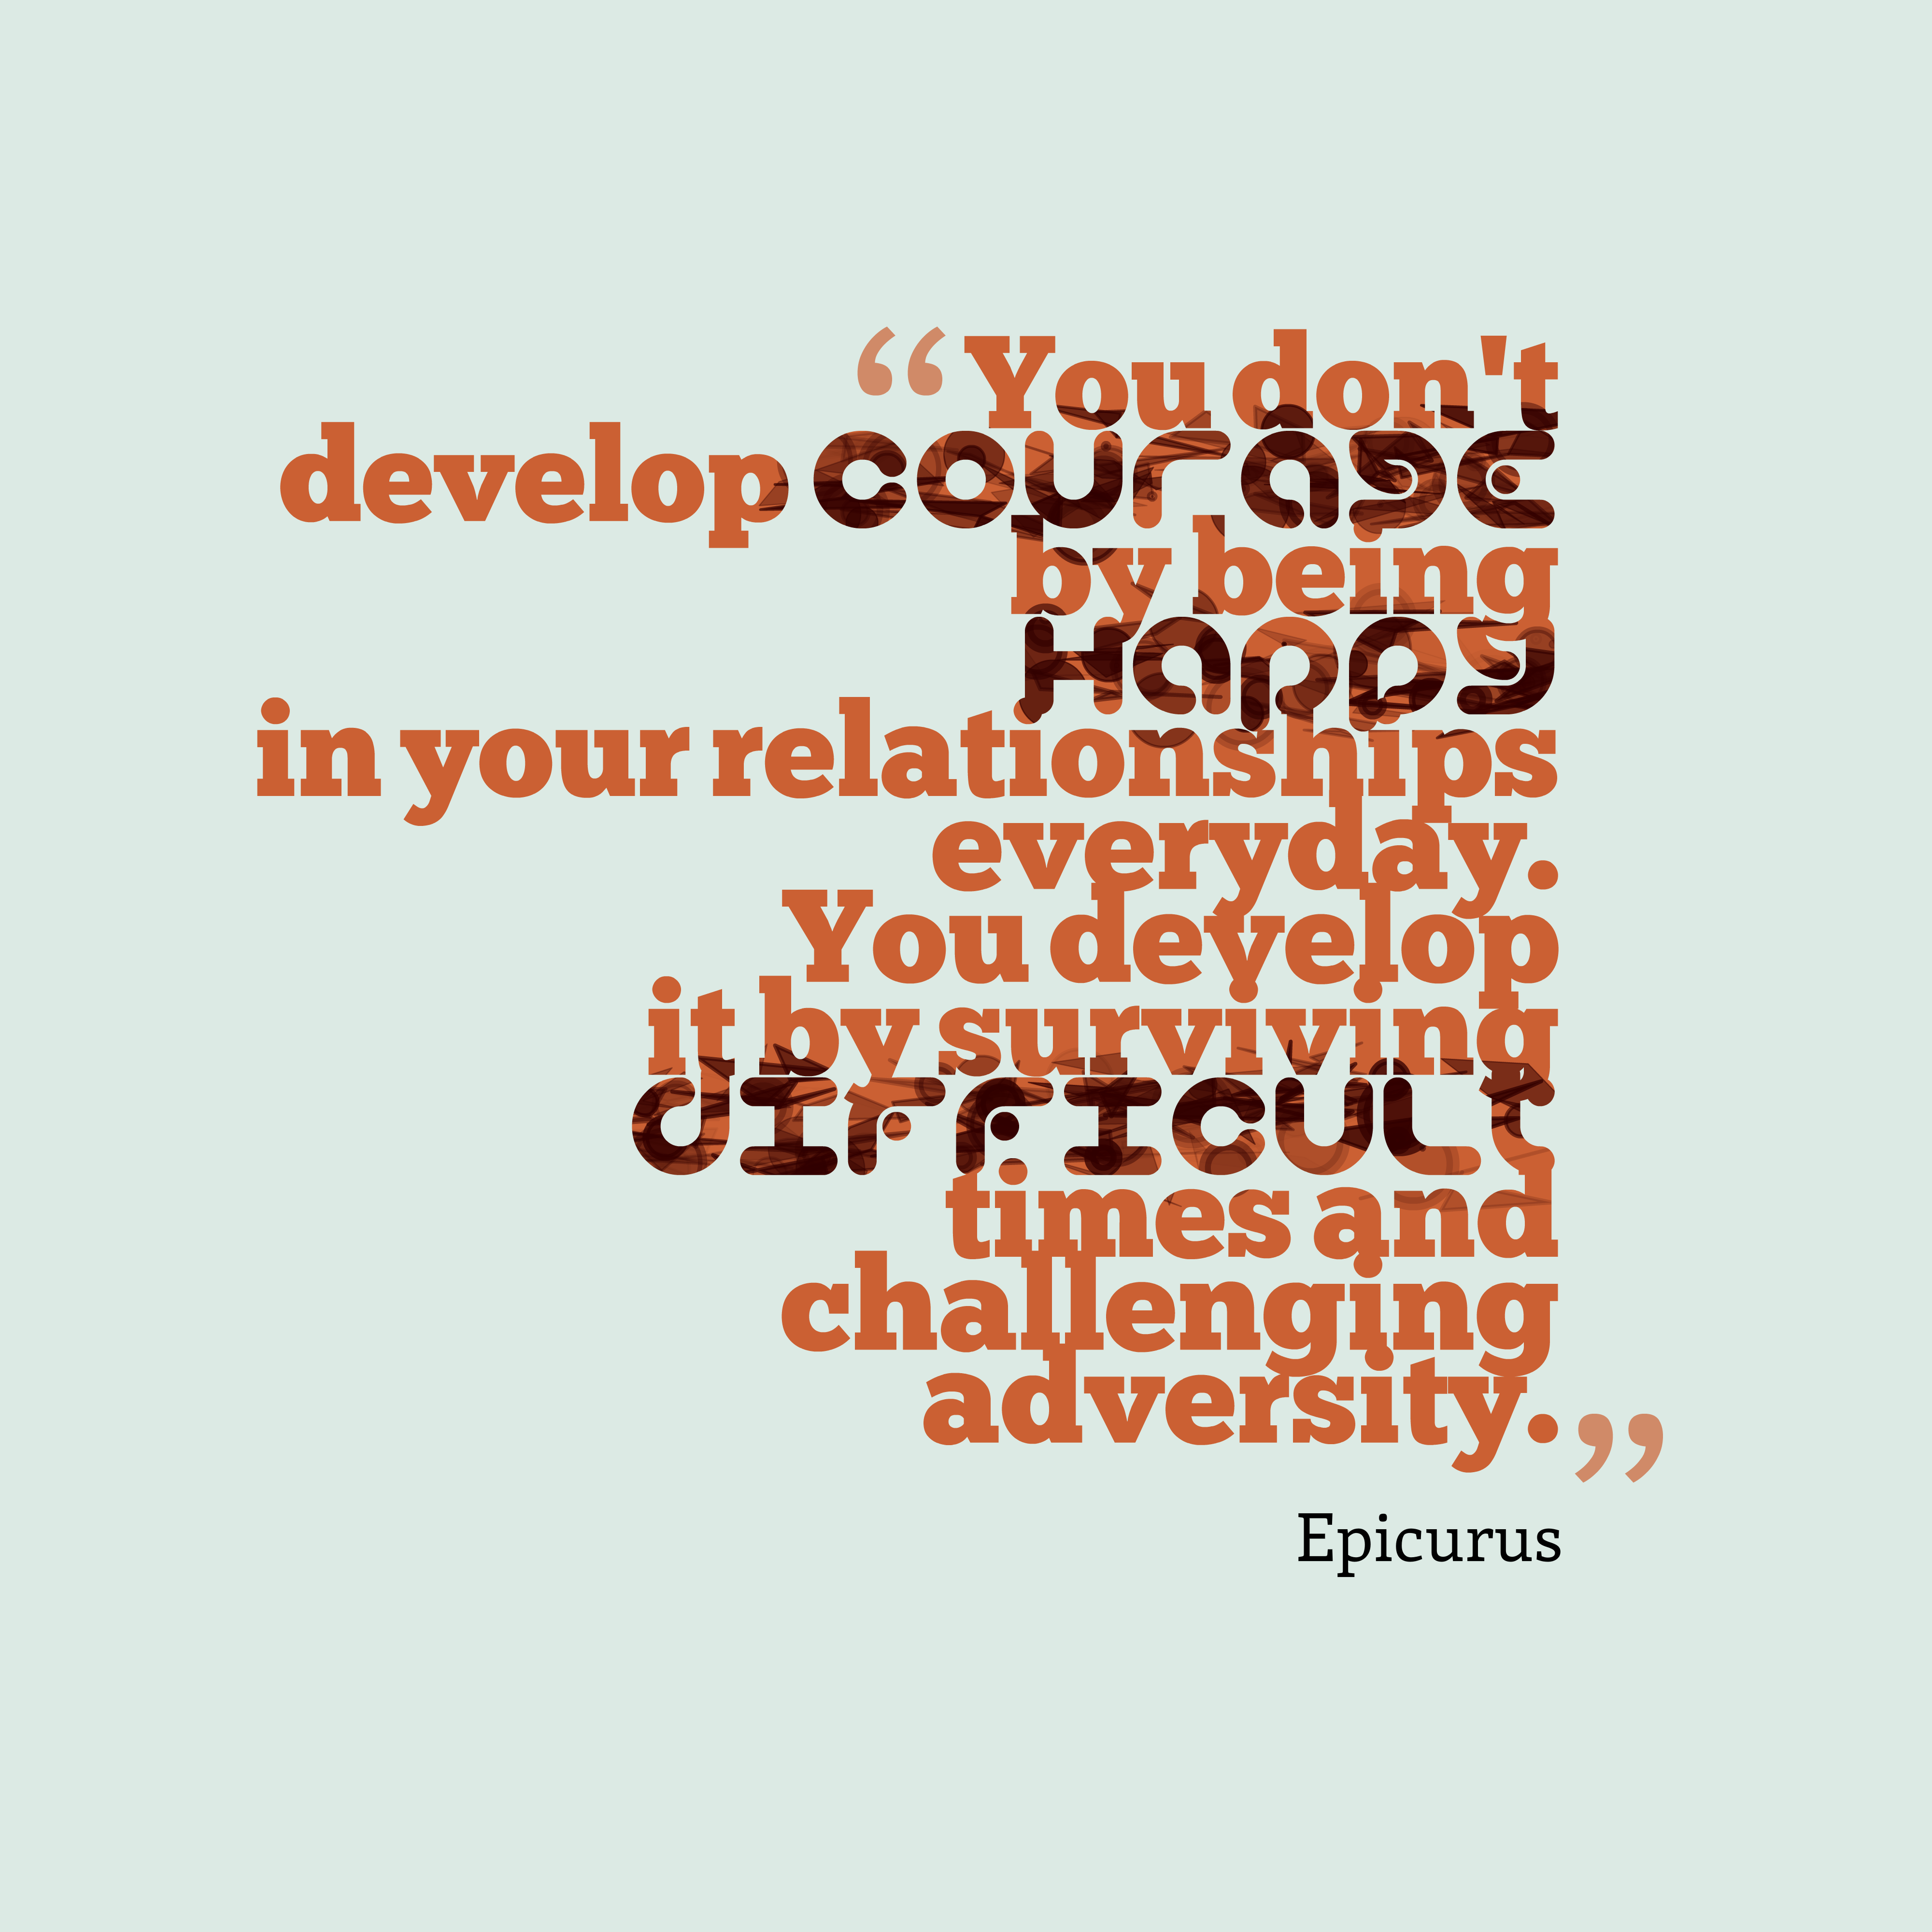 Quotes image of You don't develop courage by being happy in your relationships everyday. You develop it by surviving difficult times and challenging adversity.